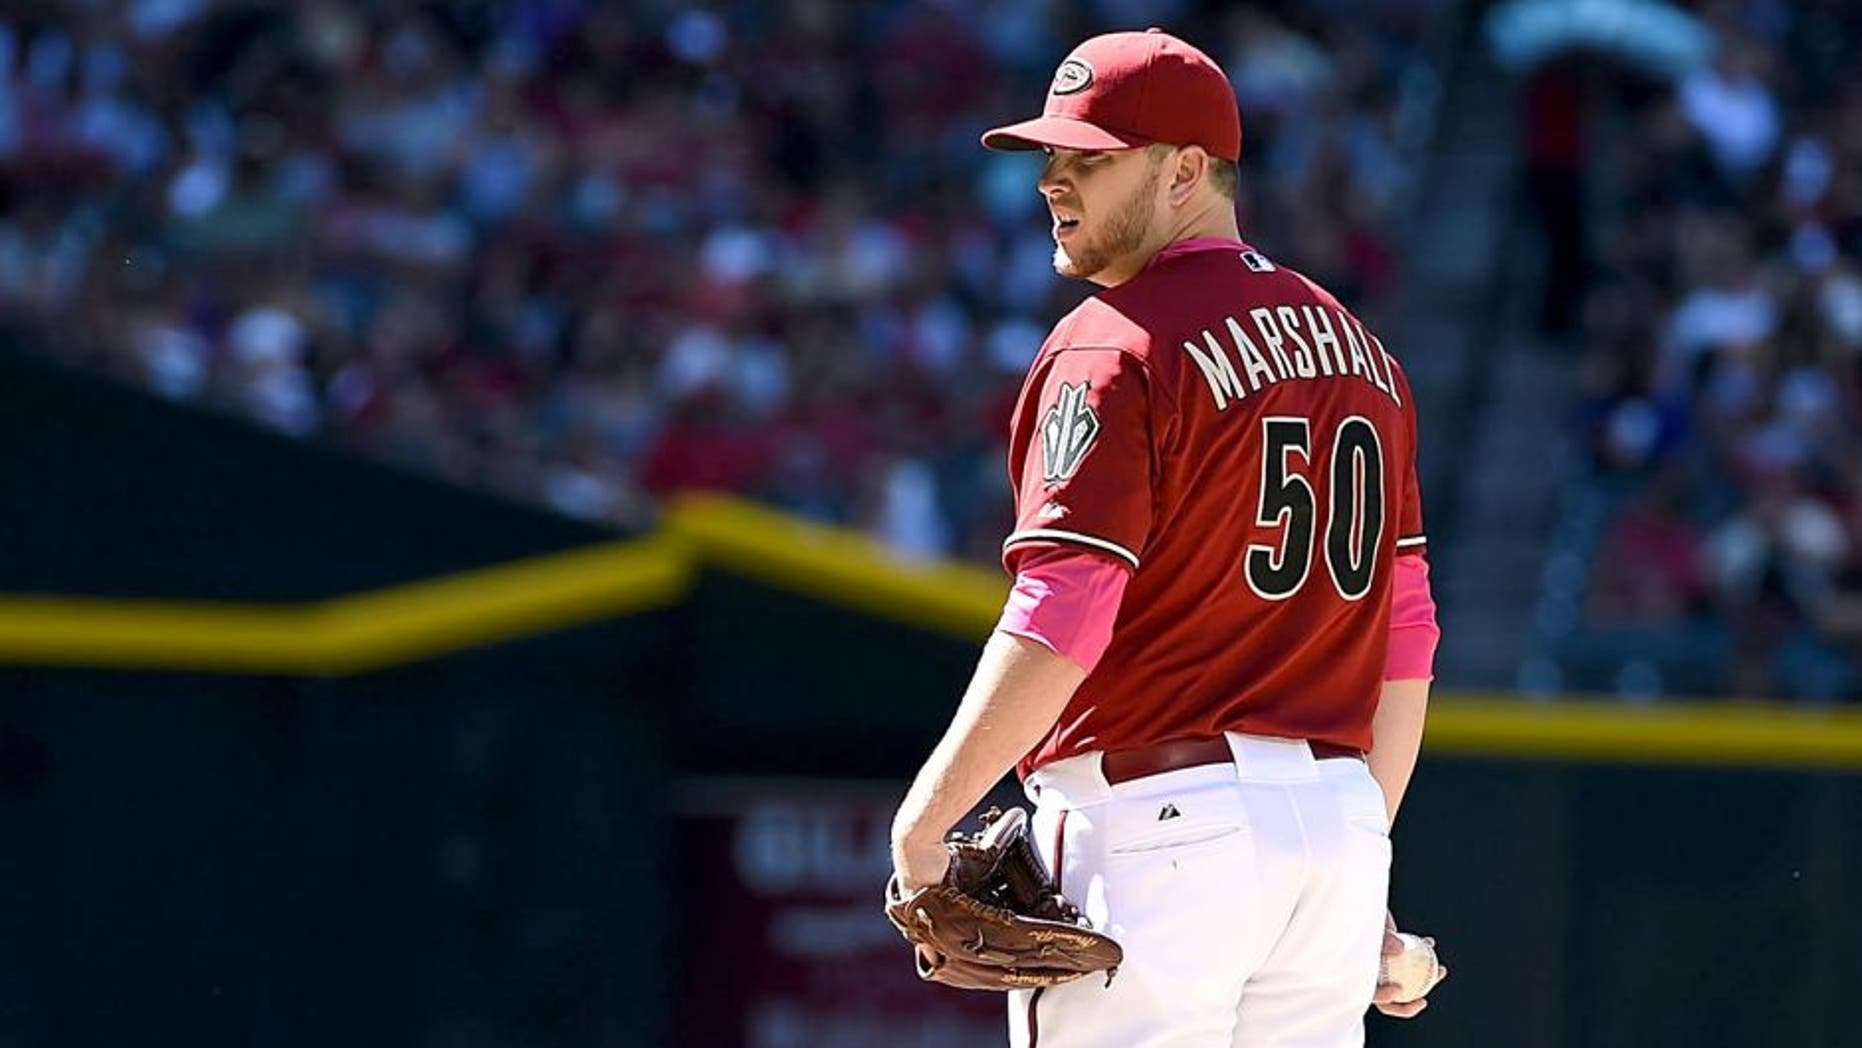 PHOENIX, AZ - MAY 10: Evan Marshall #50 of the Arizona Diamondbacks delivers a pitch against the San Diego Padres at Chase Field on May 10, 2015 in Phoenix, Arizona. (Photo by Norm Hall/Getty Images)